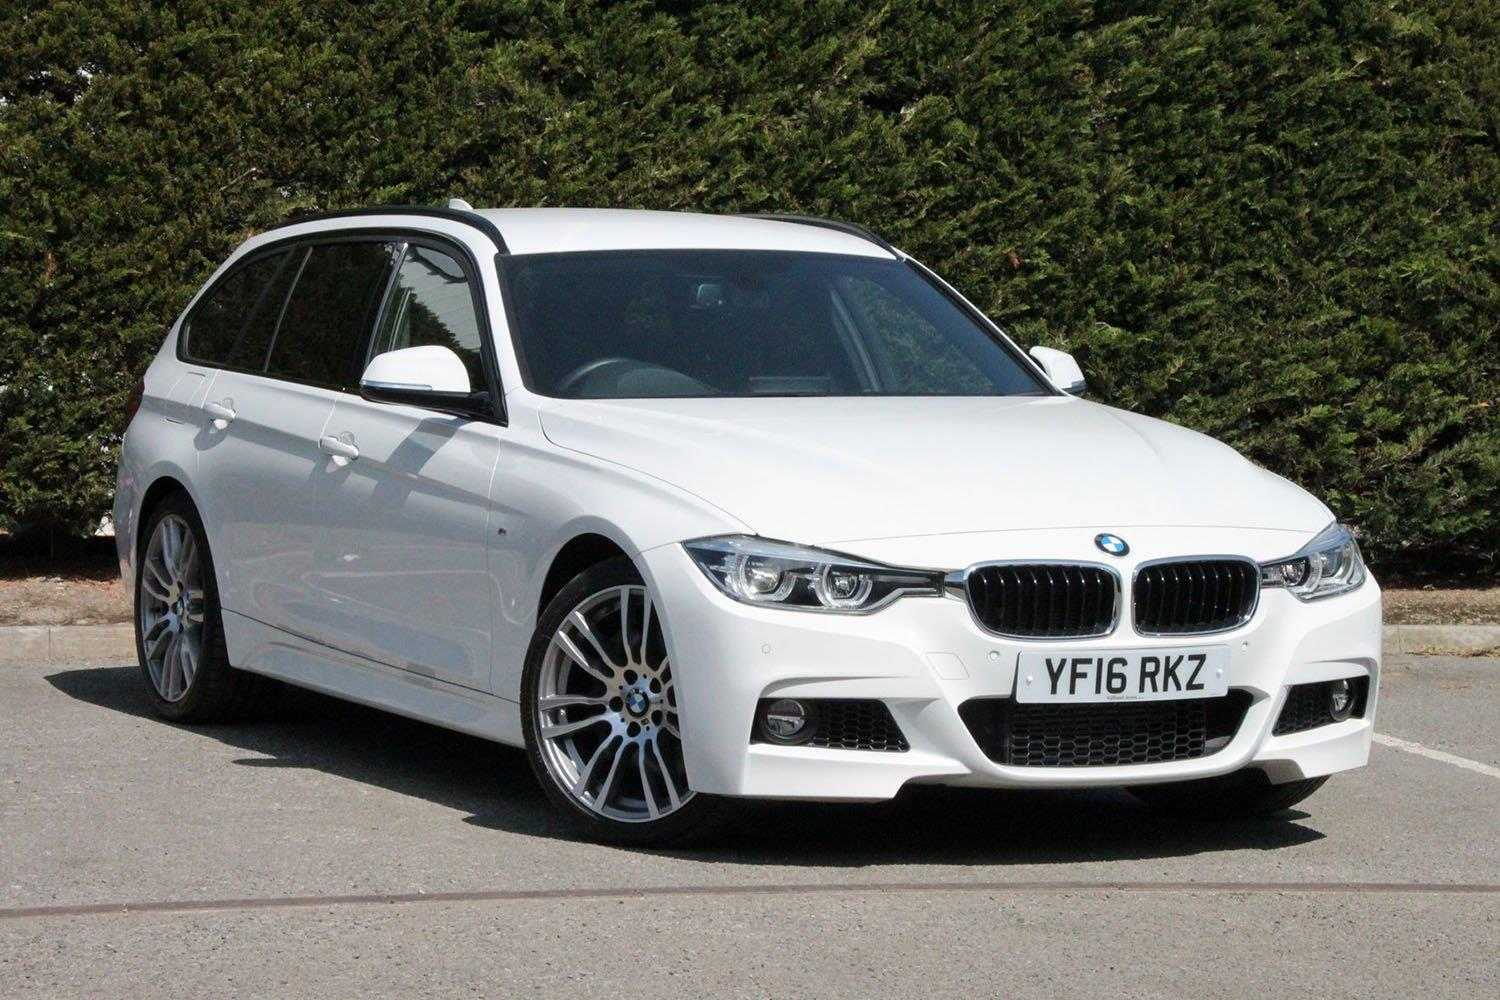 BMW 3 Series Touring YF16RKZ - Image 6